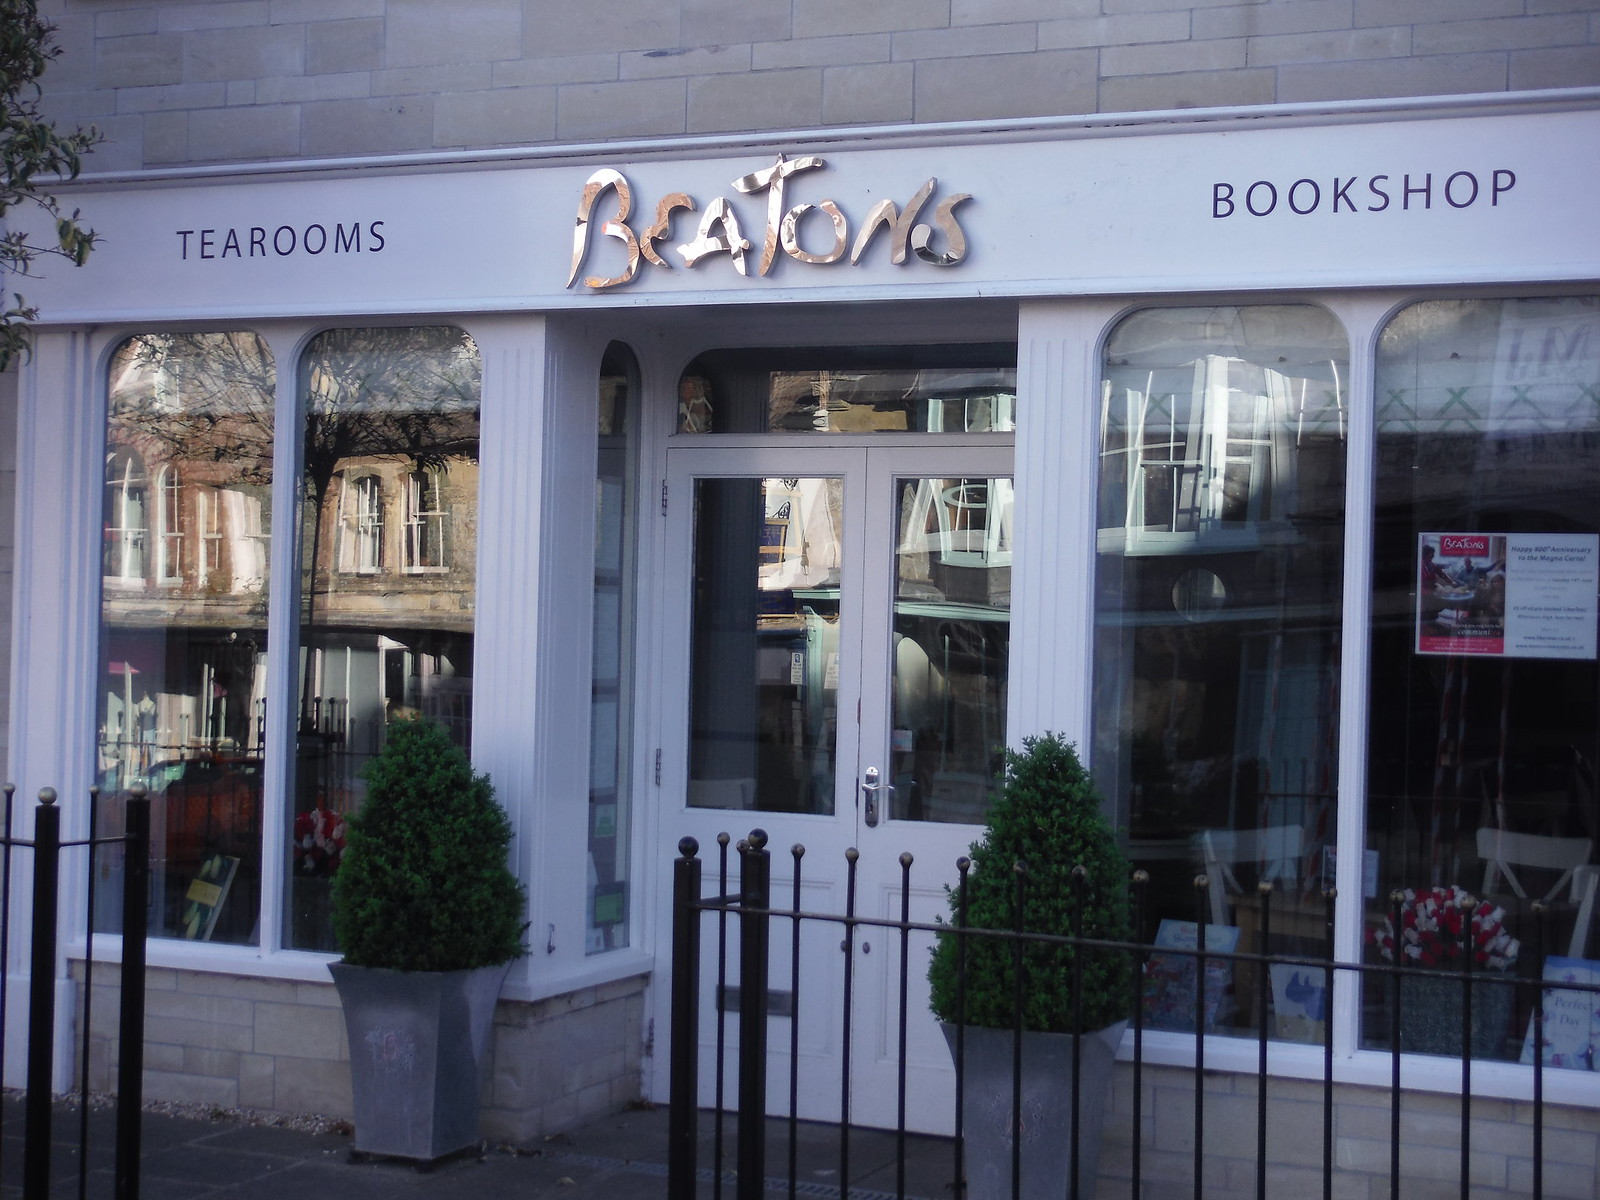 Beatons Tearooms and Bookshop SWC Walk 249 Tisbury Circular via Dinton and Fovant